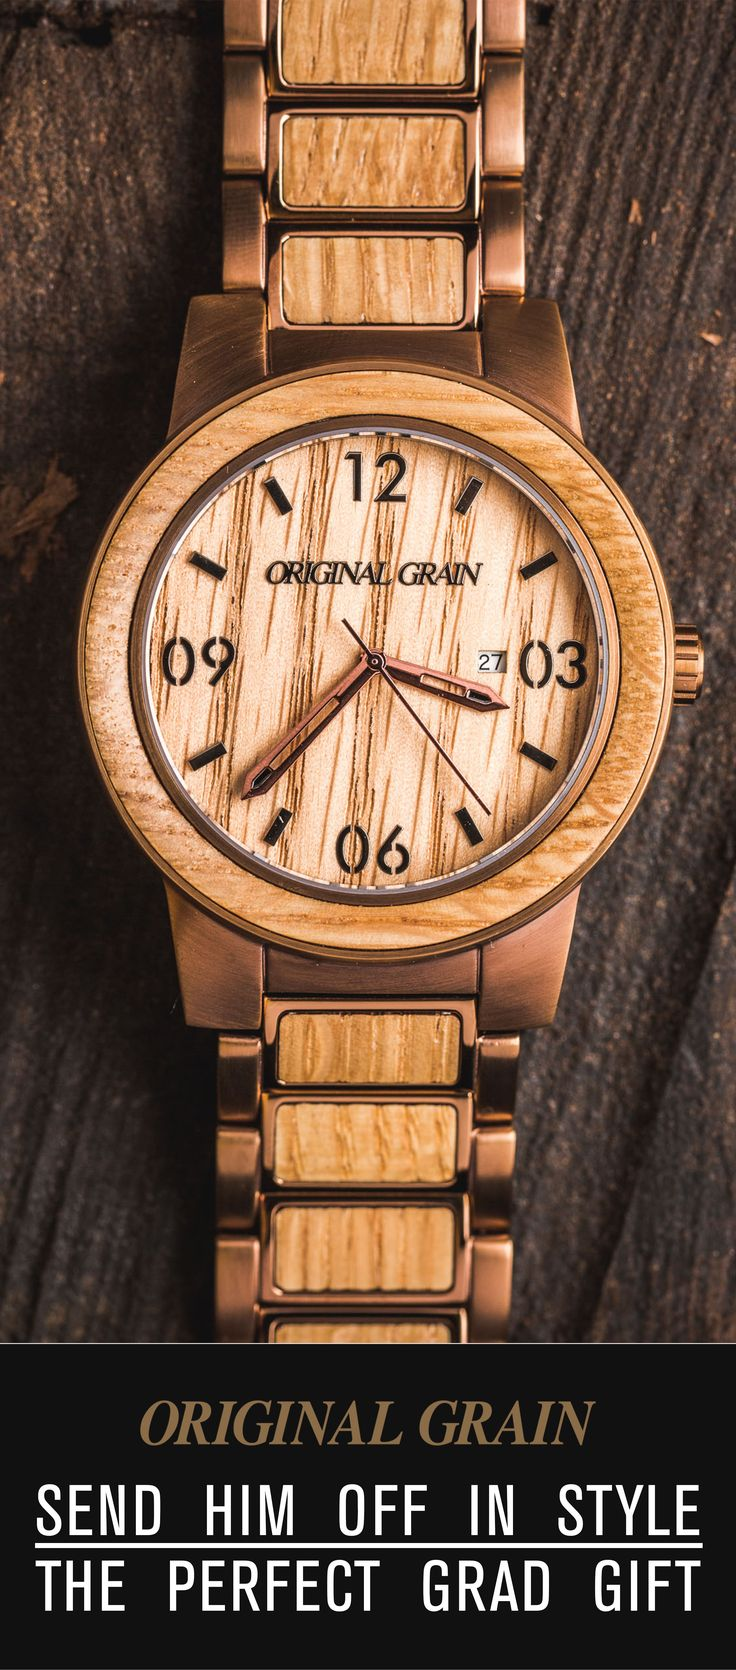 whiskey junghans over elegance pin seems watch ryok from get this on timeless stronger a strap attraction max to that only achieves watches time bill